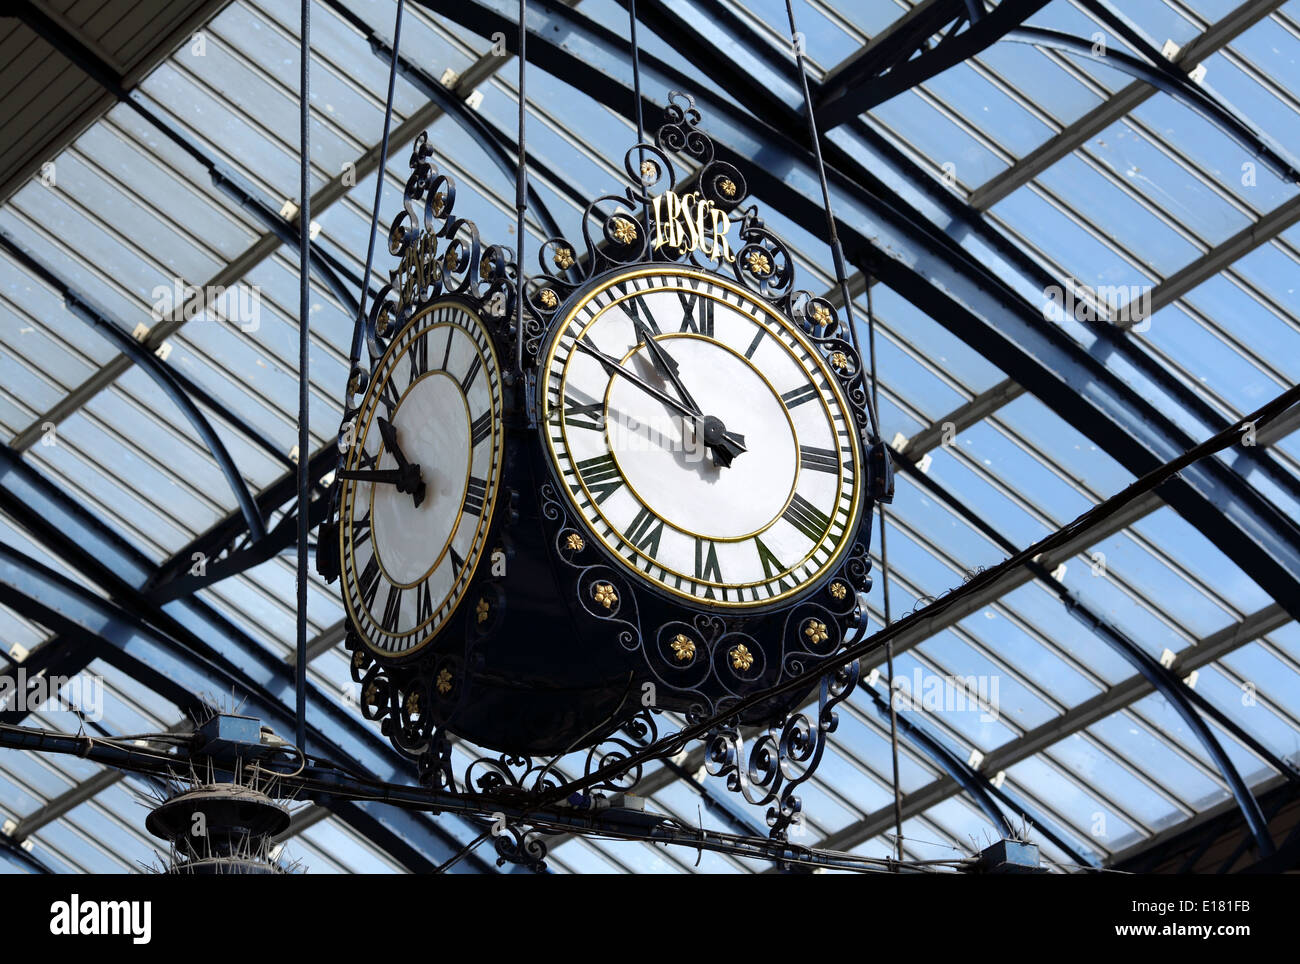 Ornate old clock hanging from the roof in Brighton station. - Stock Image